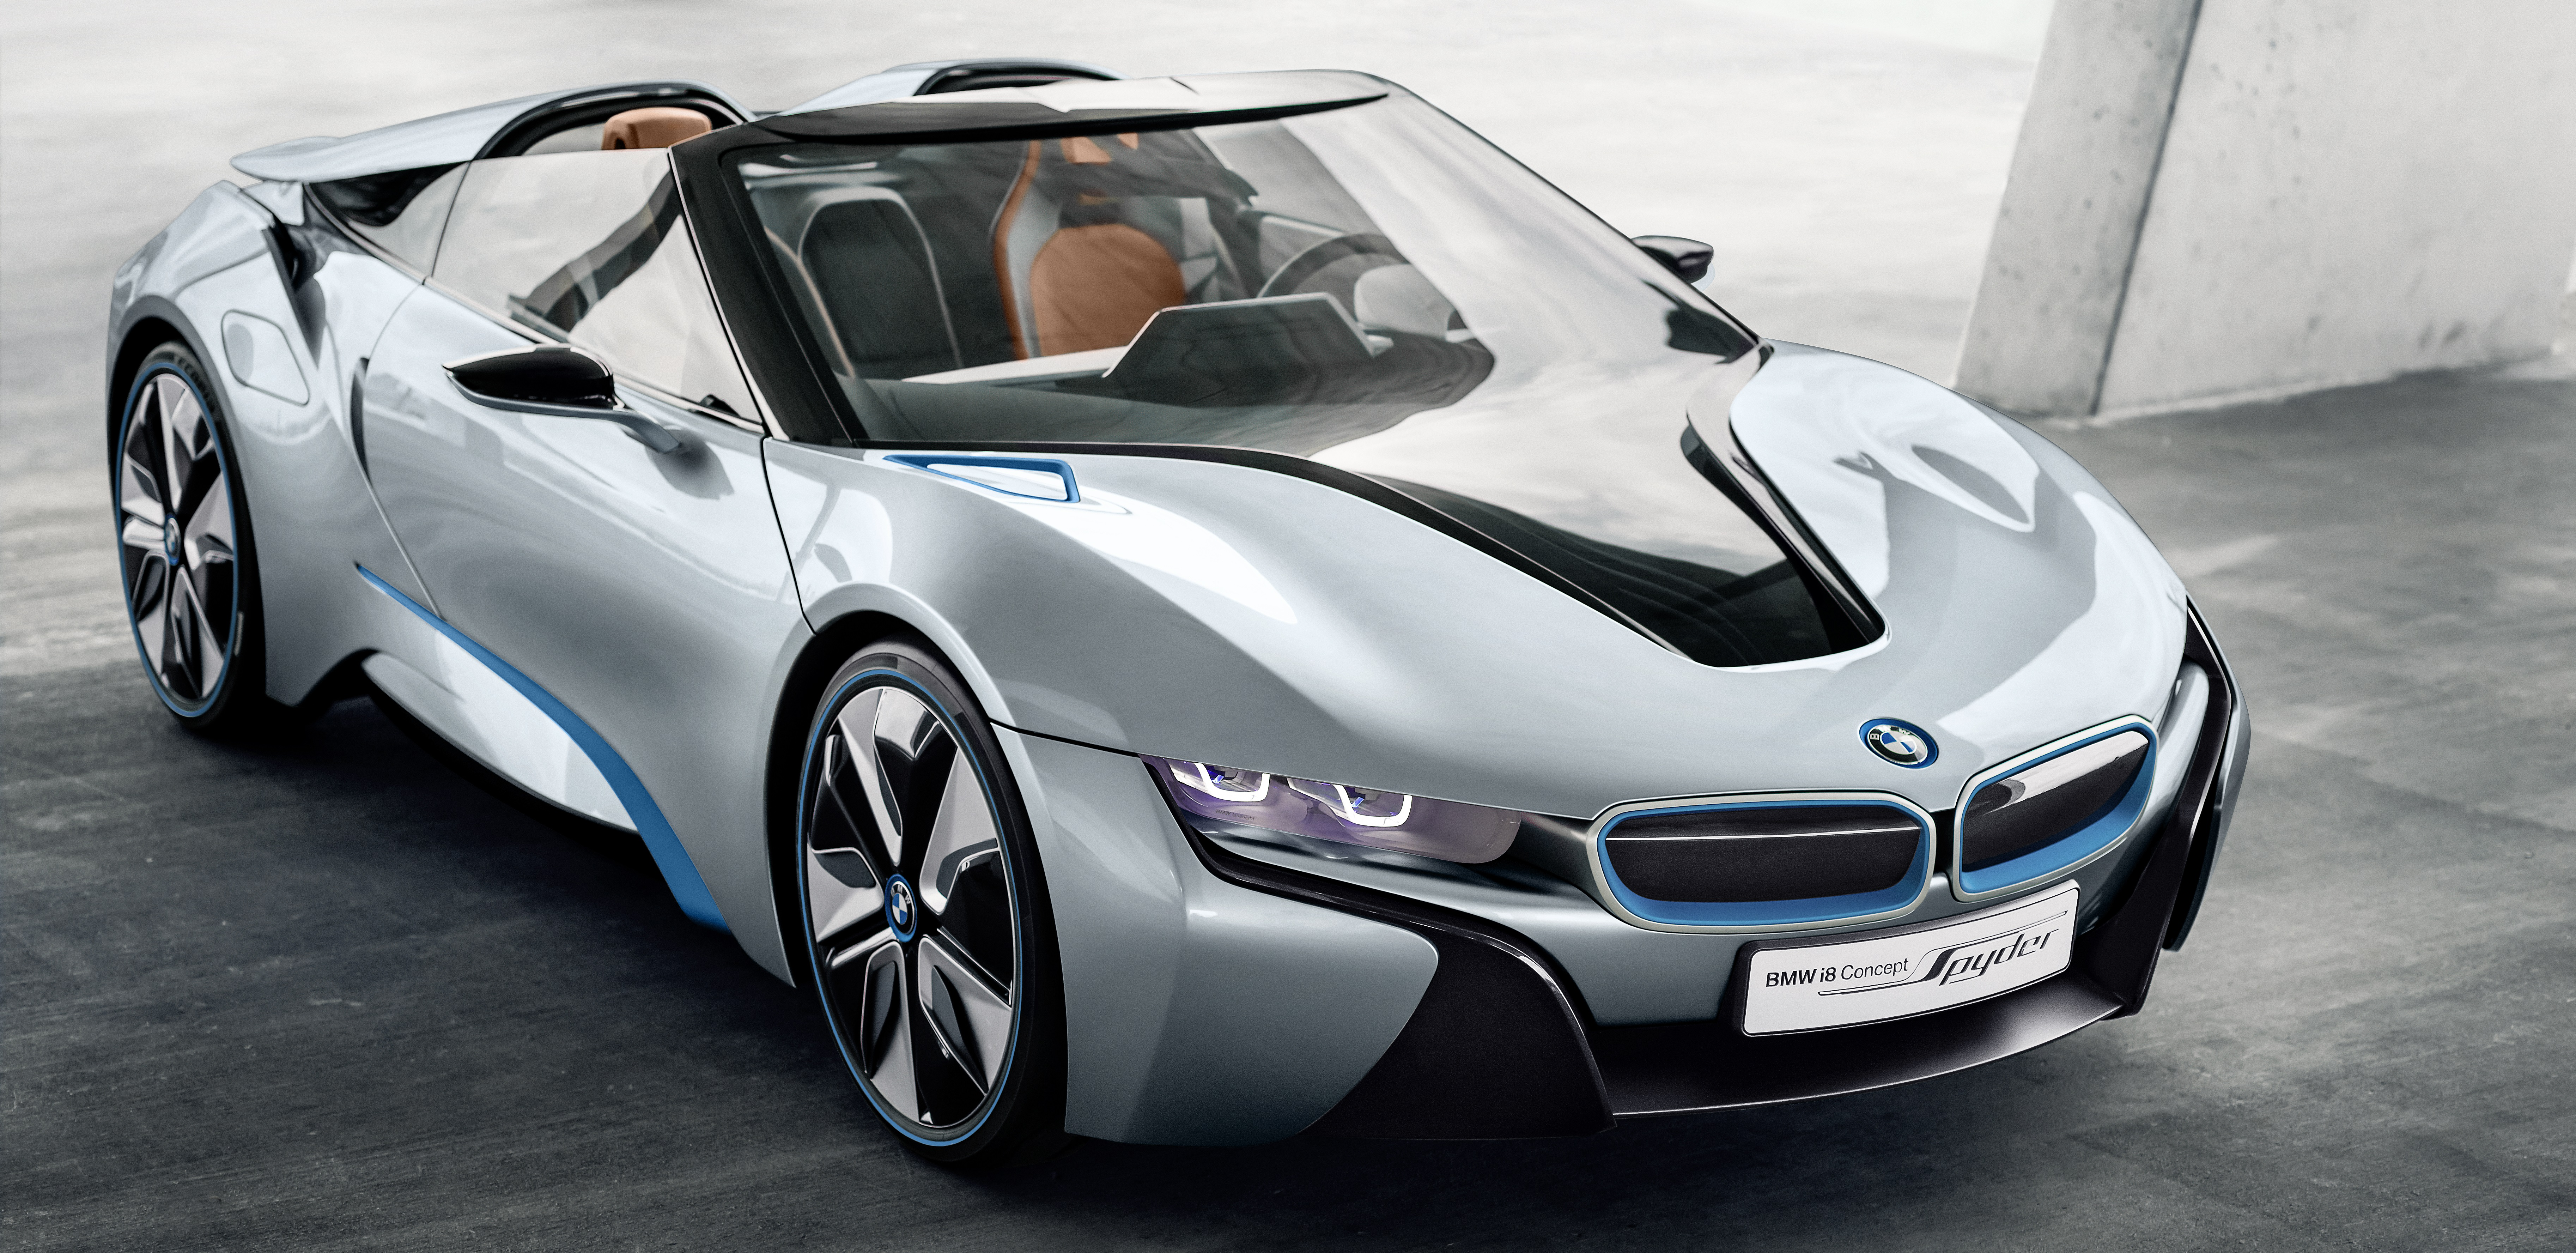 BMW i8 convertible